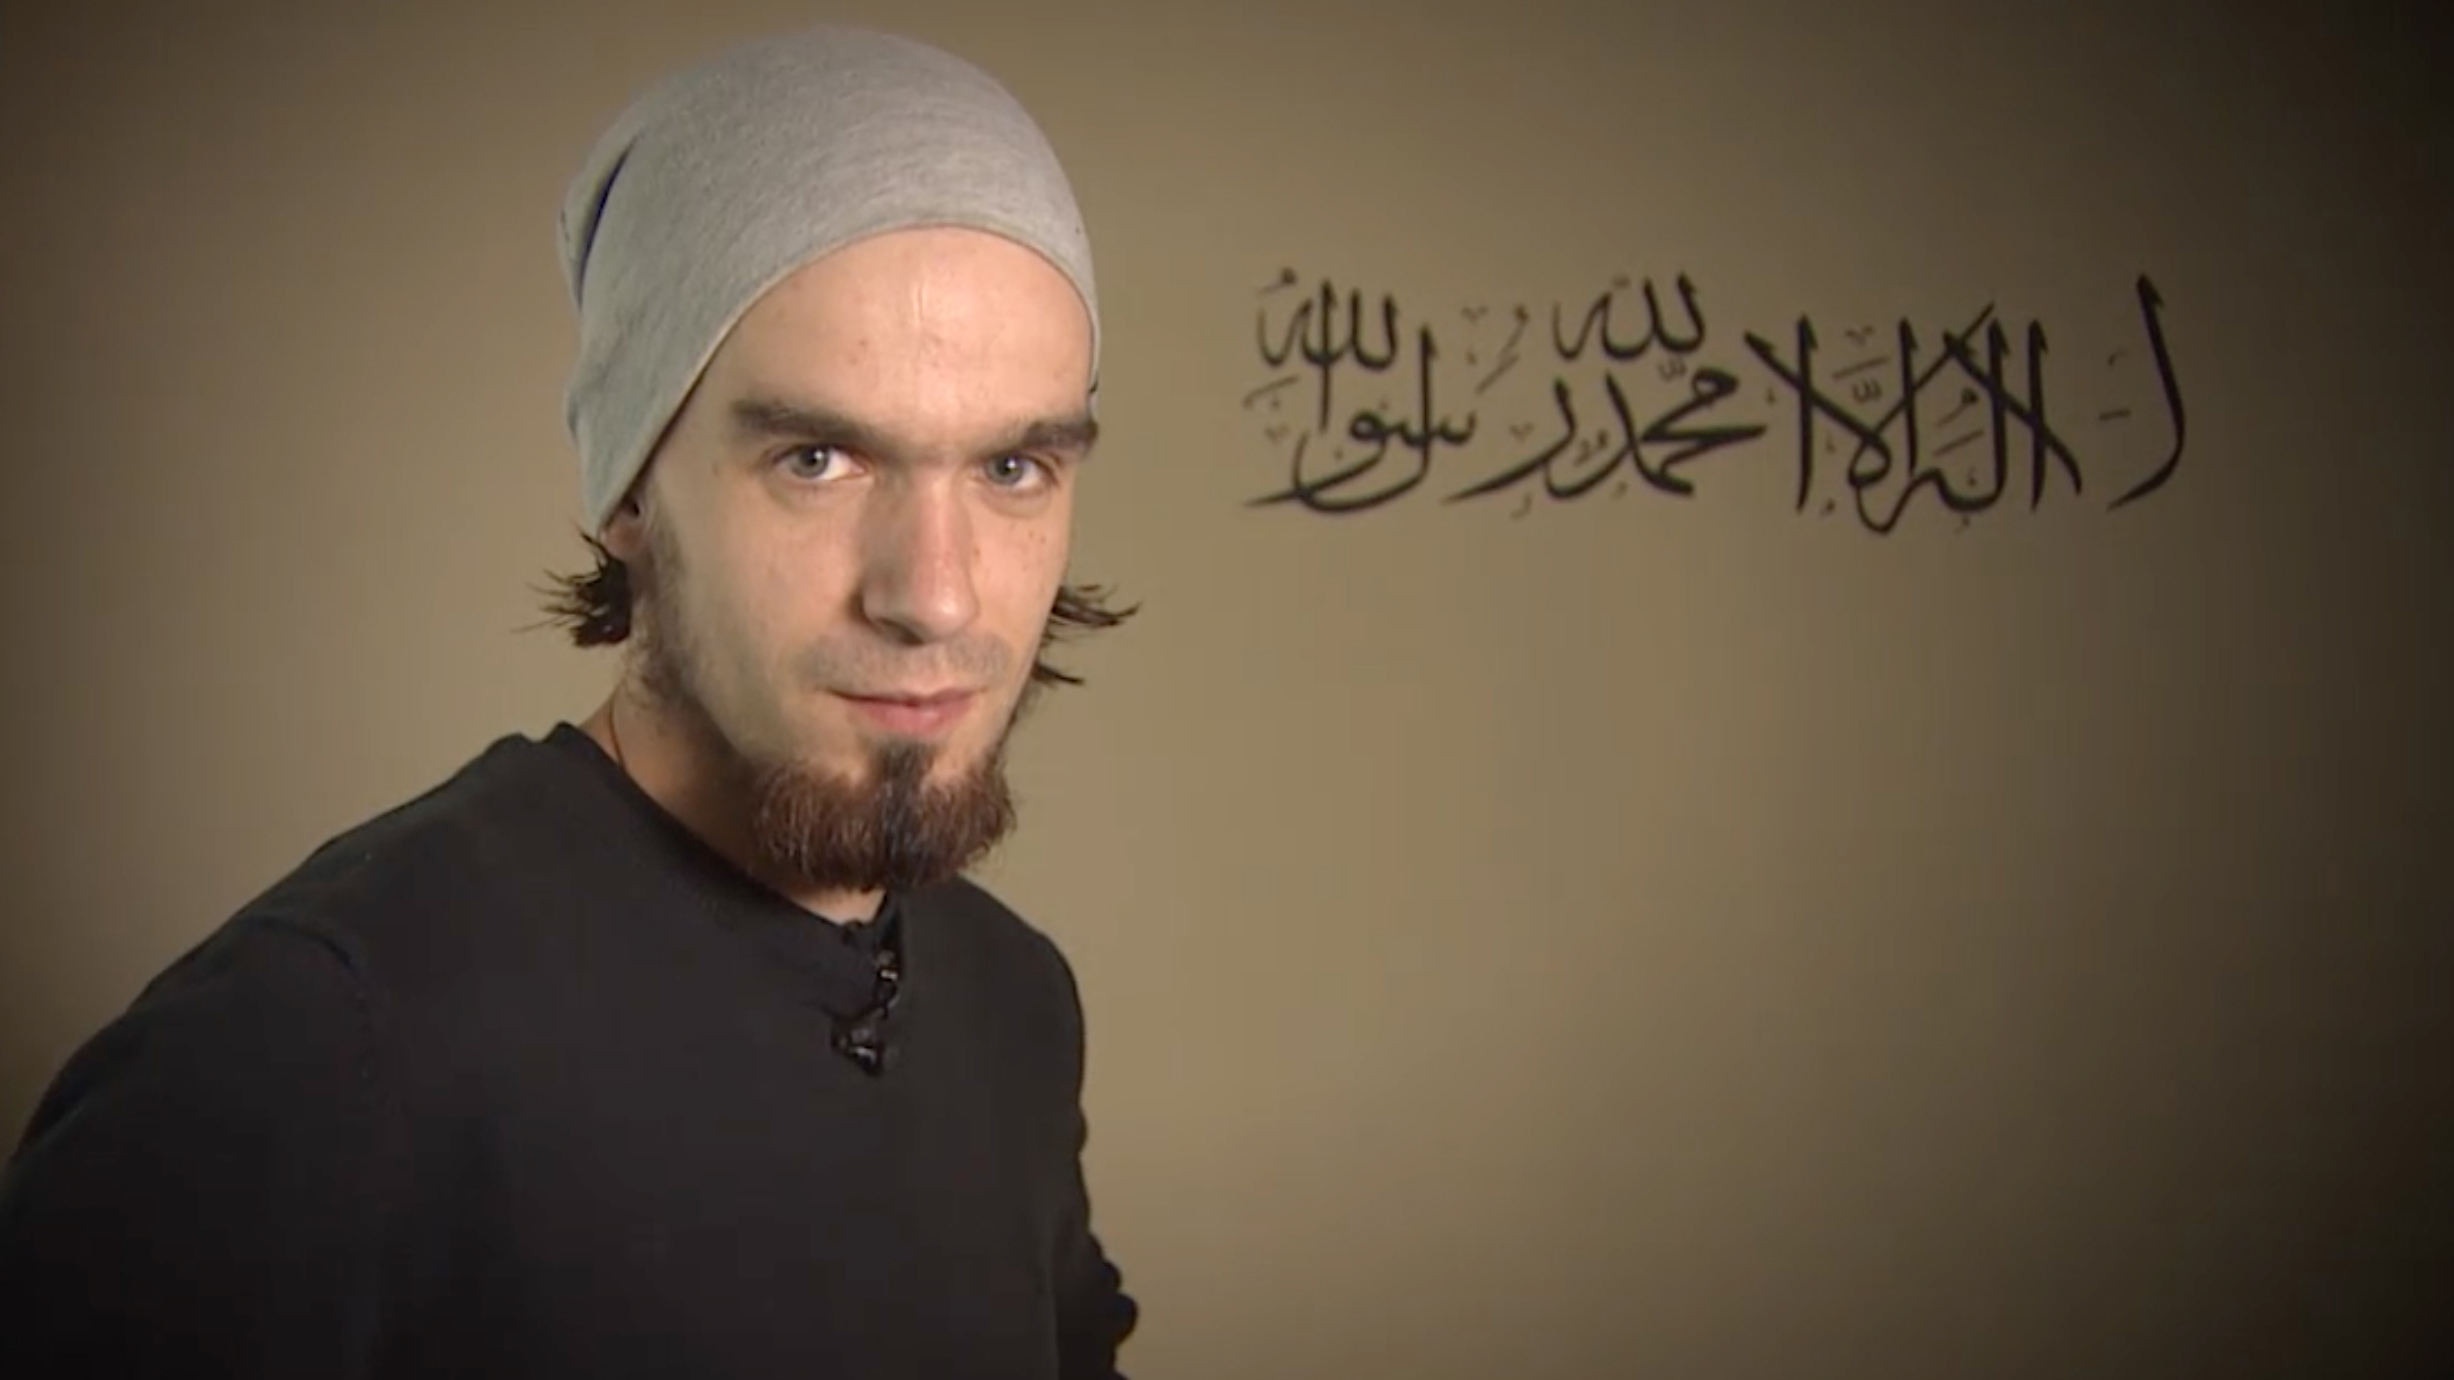 MEET THE ISIS SOLDIER NEXT DOOR IN NEW CNN DOCUMENTARY 'ISIS: BEHIND THE MASK'